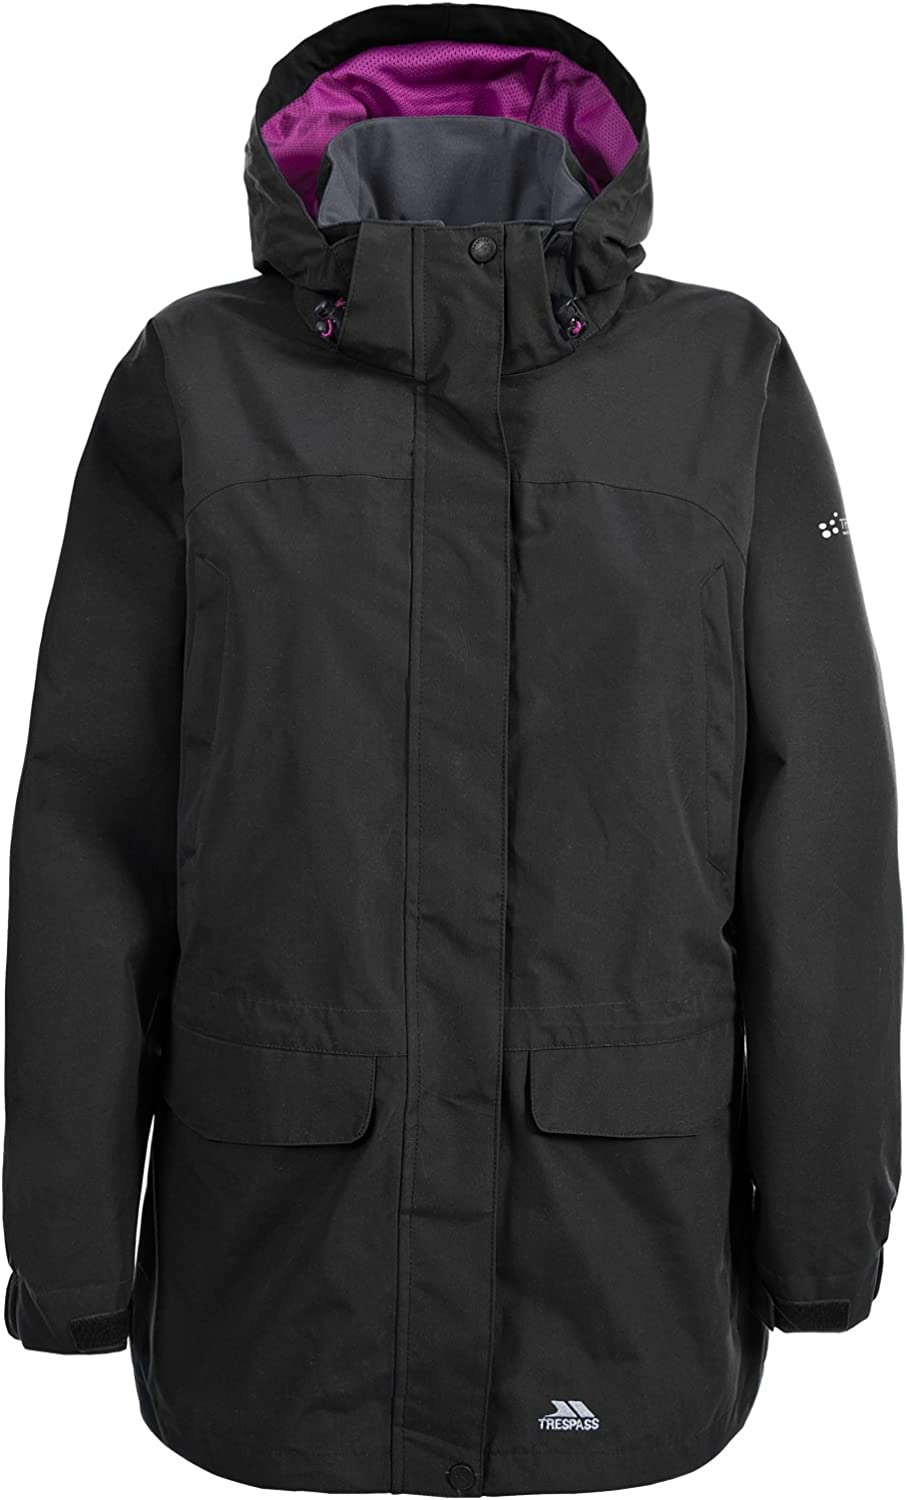 Trespass Mujeres Chaqueta Impermeable Skyrise